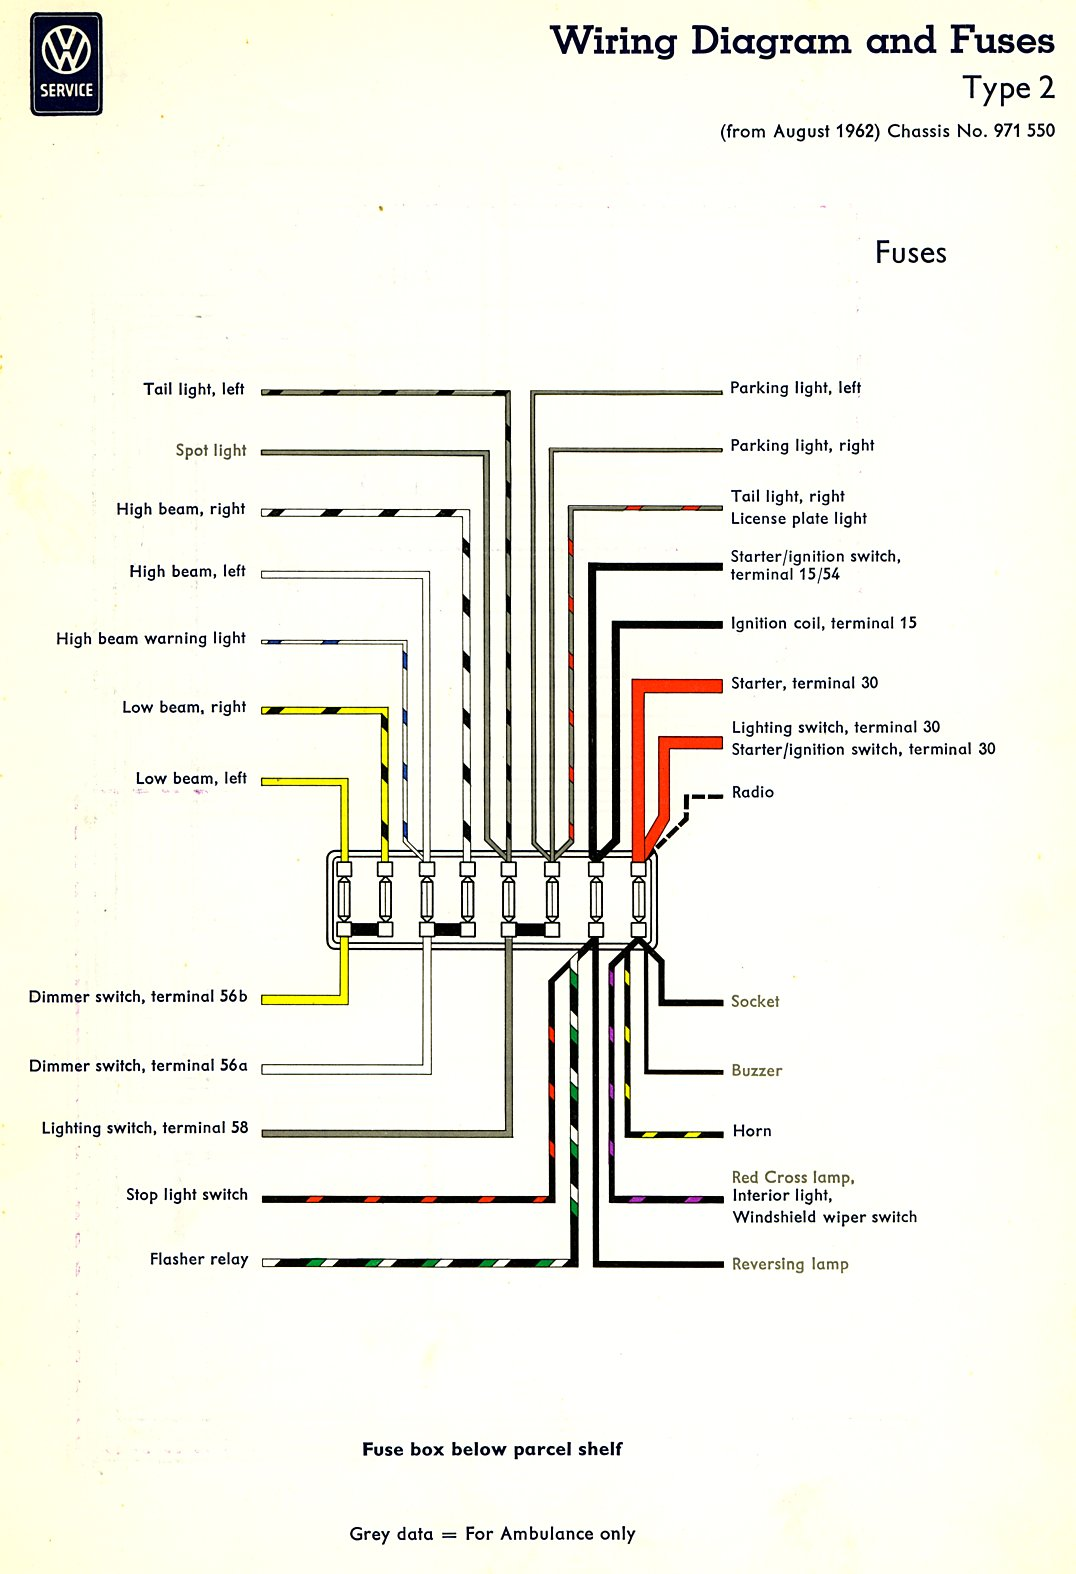 bus_63_fuses 1963 bus wiring diagram thegoldenbug com 1968 vw bus wiring diagram at bakdesigns.co